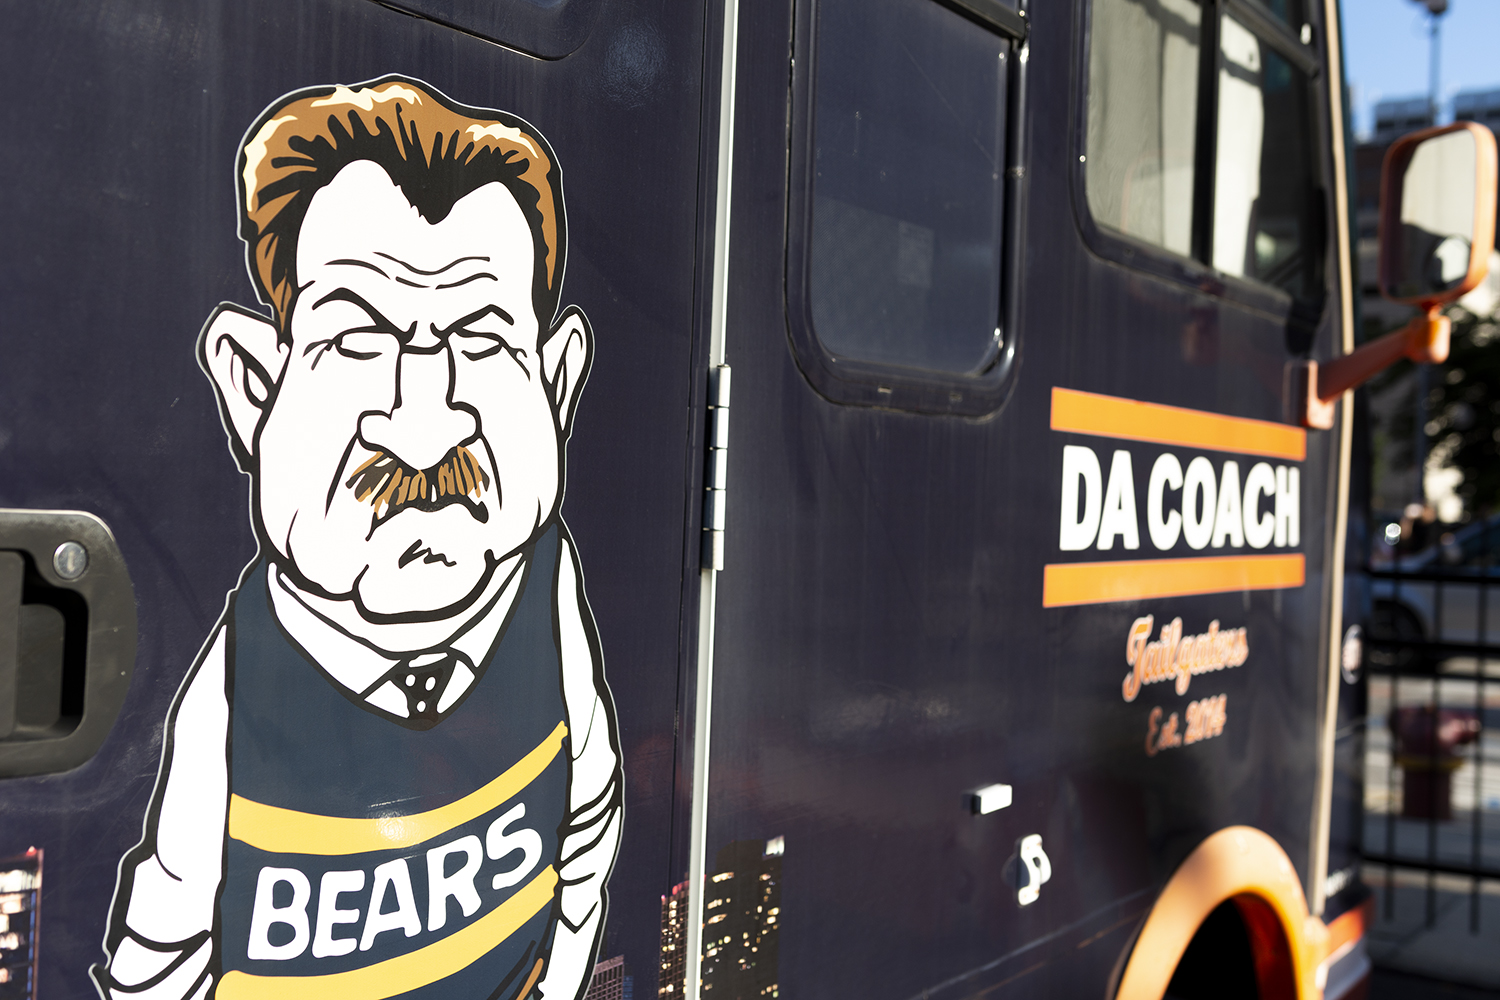 Bears+legend+Mike+Ditka+scowls+at+passersby+from+the+side+of+%22Da+Coach%22+bus+Sept.+5.